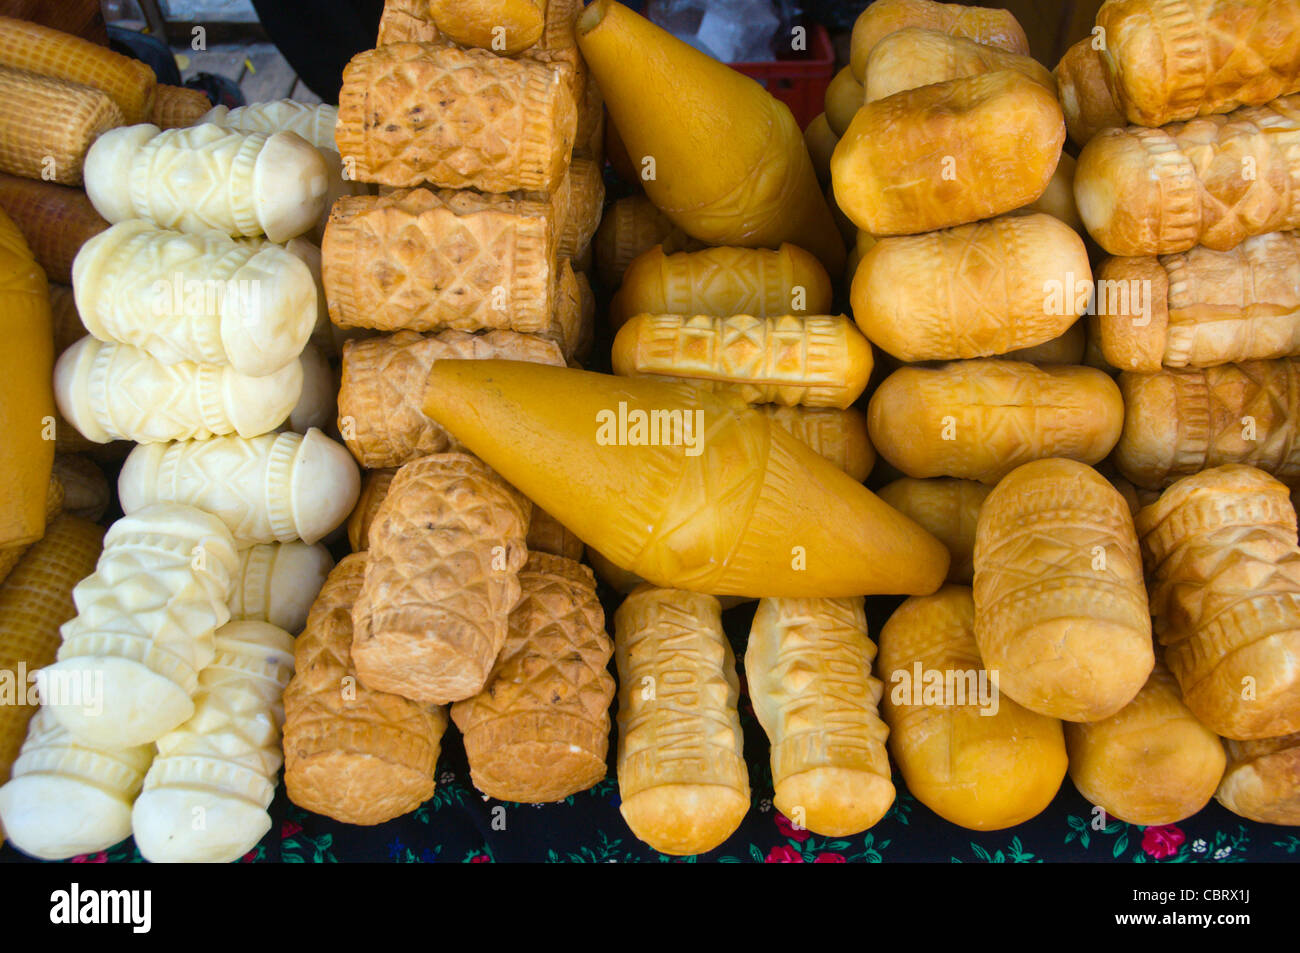 Polish bread rolls Warsaw Poland Europe - Stock Image